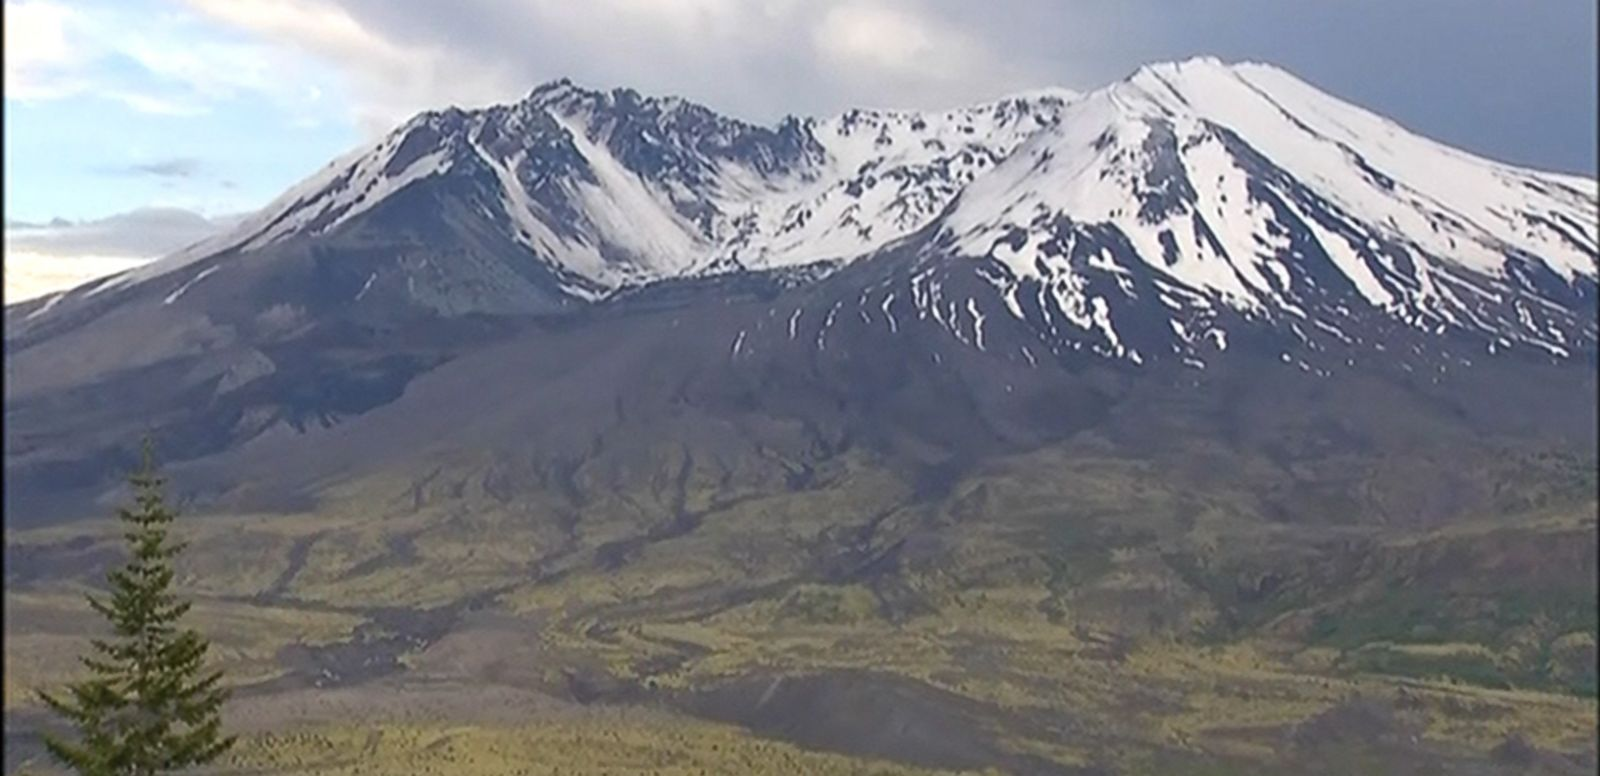 VIDEO: Greg Lentsch was descending Mount St. Helens when he spotted a camera loaded with someone's powerful images.